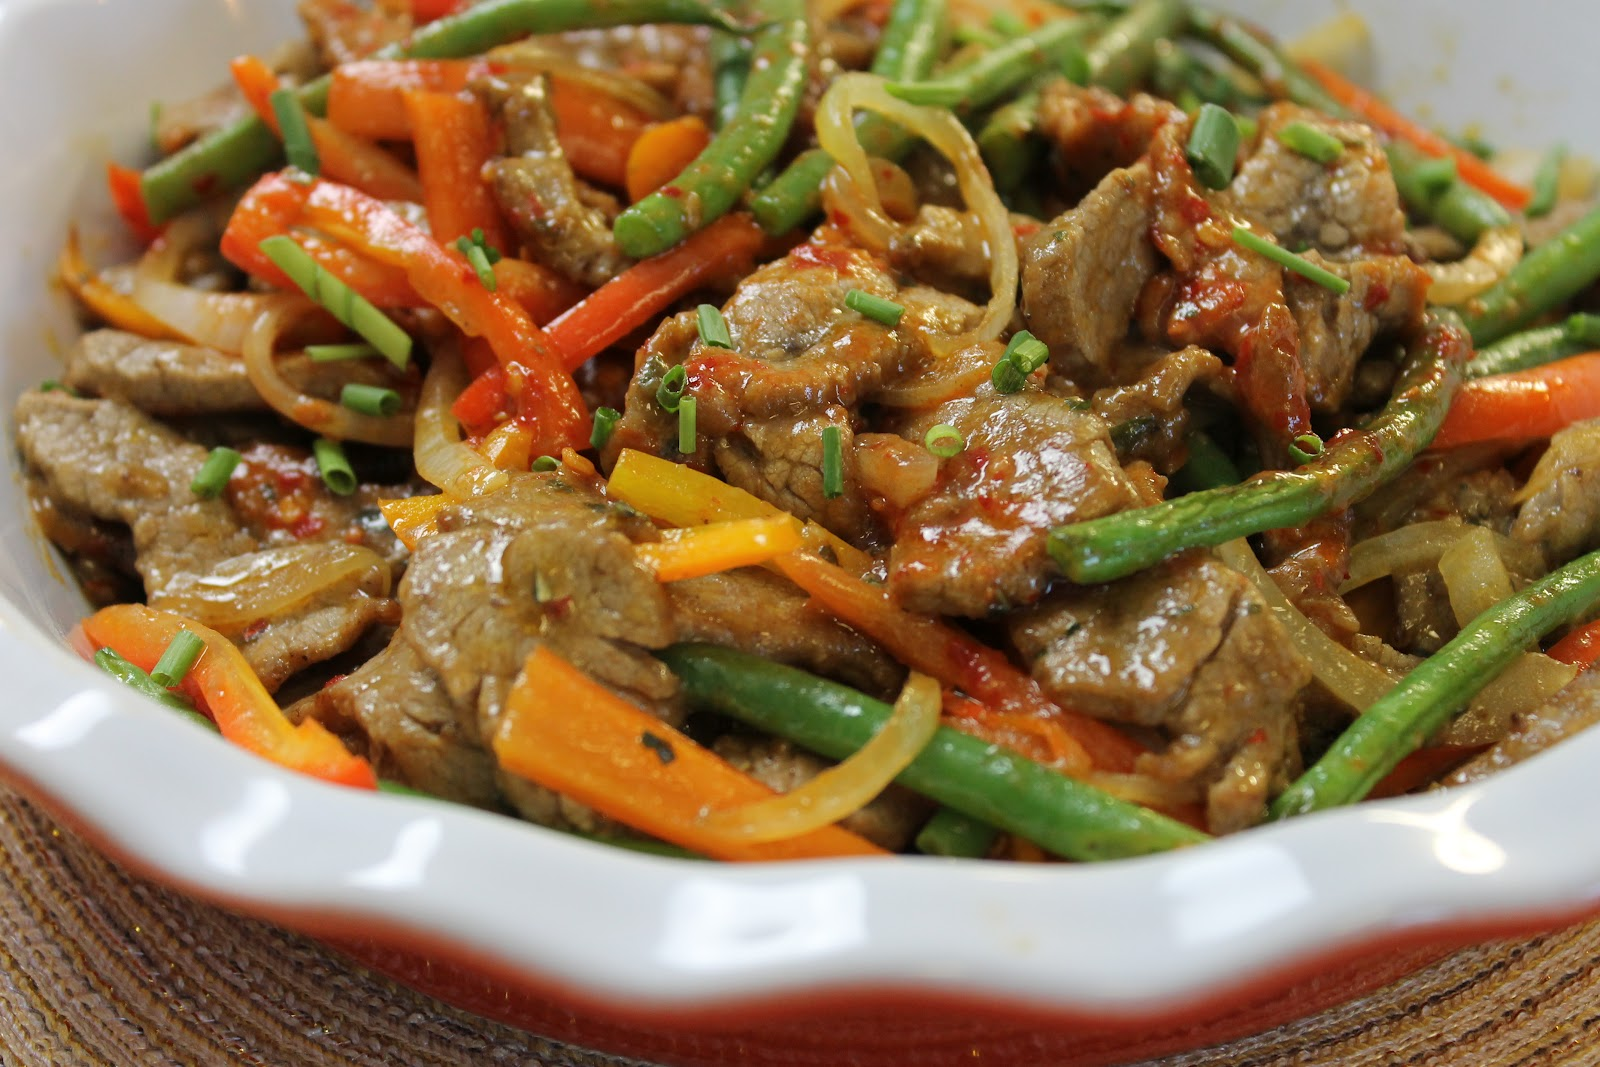 ... Today - From Pantry To Table: From the Pantry - Spicy Stir-Fried Beef